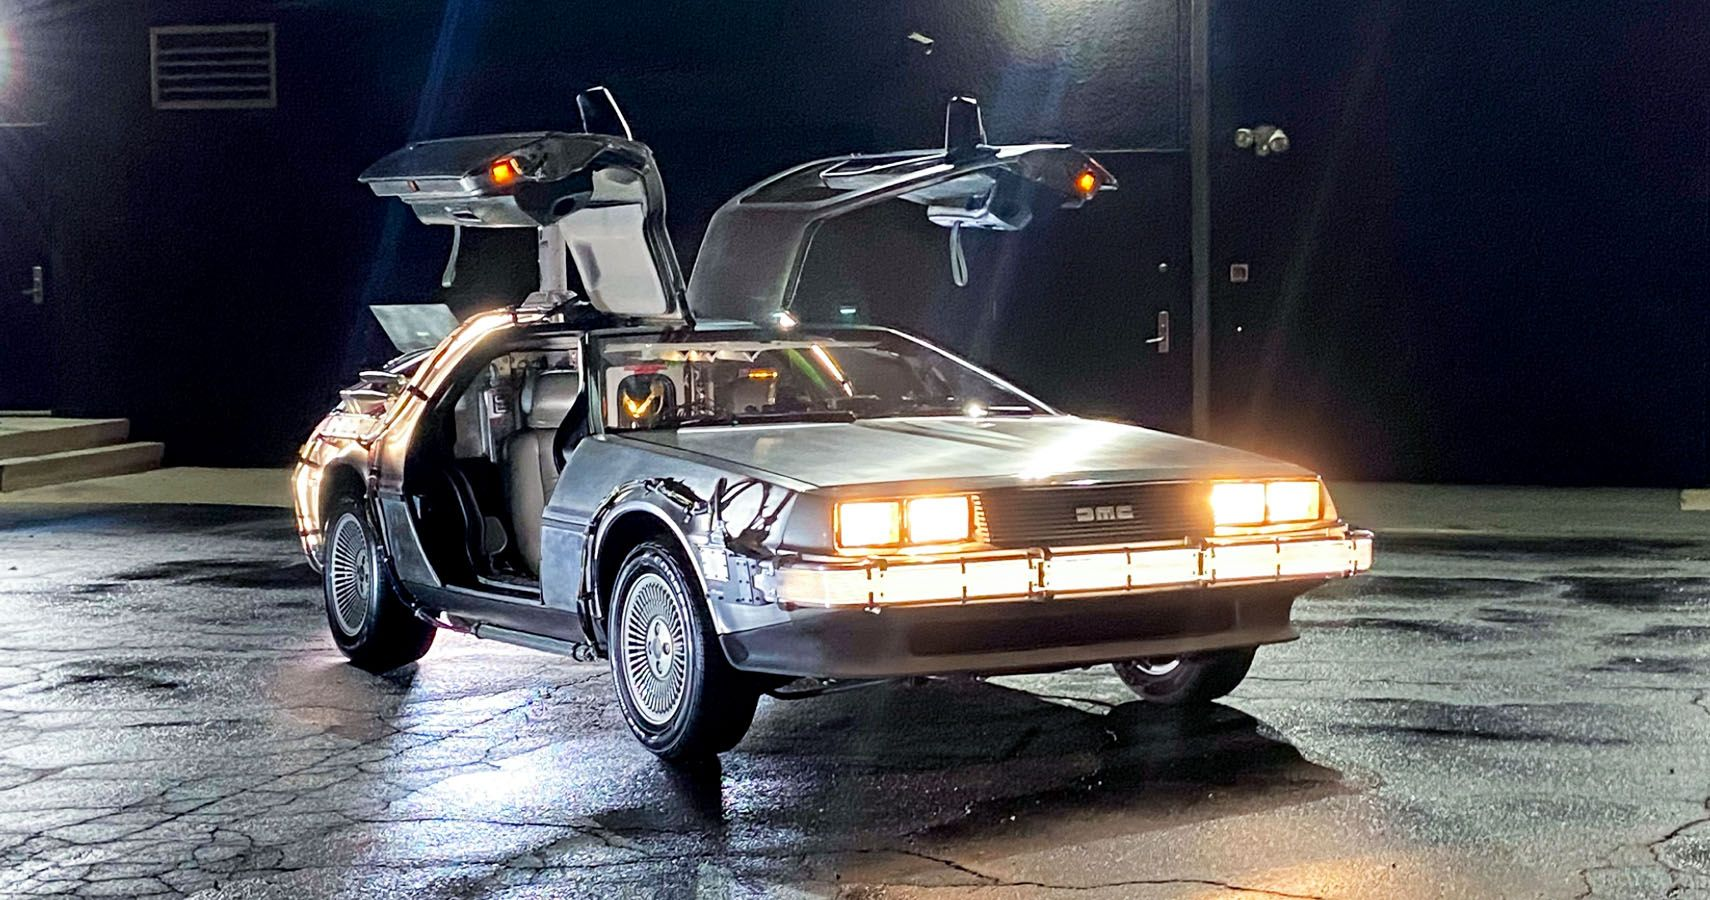 Custom-Built 'Back To The Future' DeLorean Using Original Movie Parts Headed To Auction